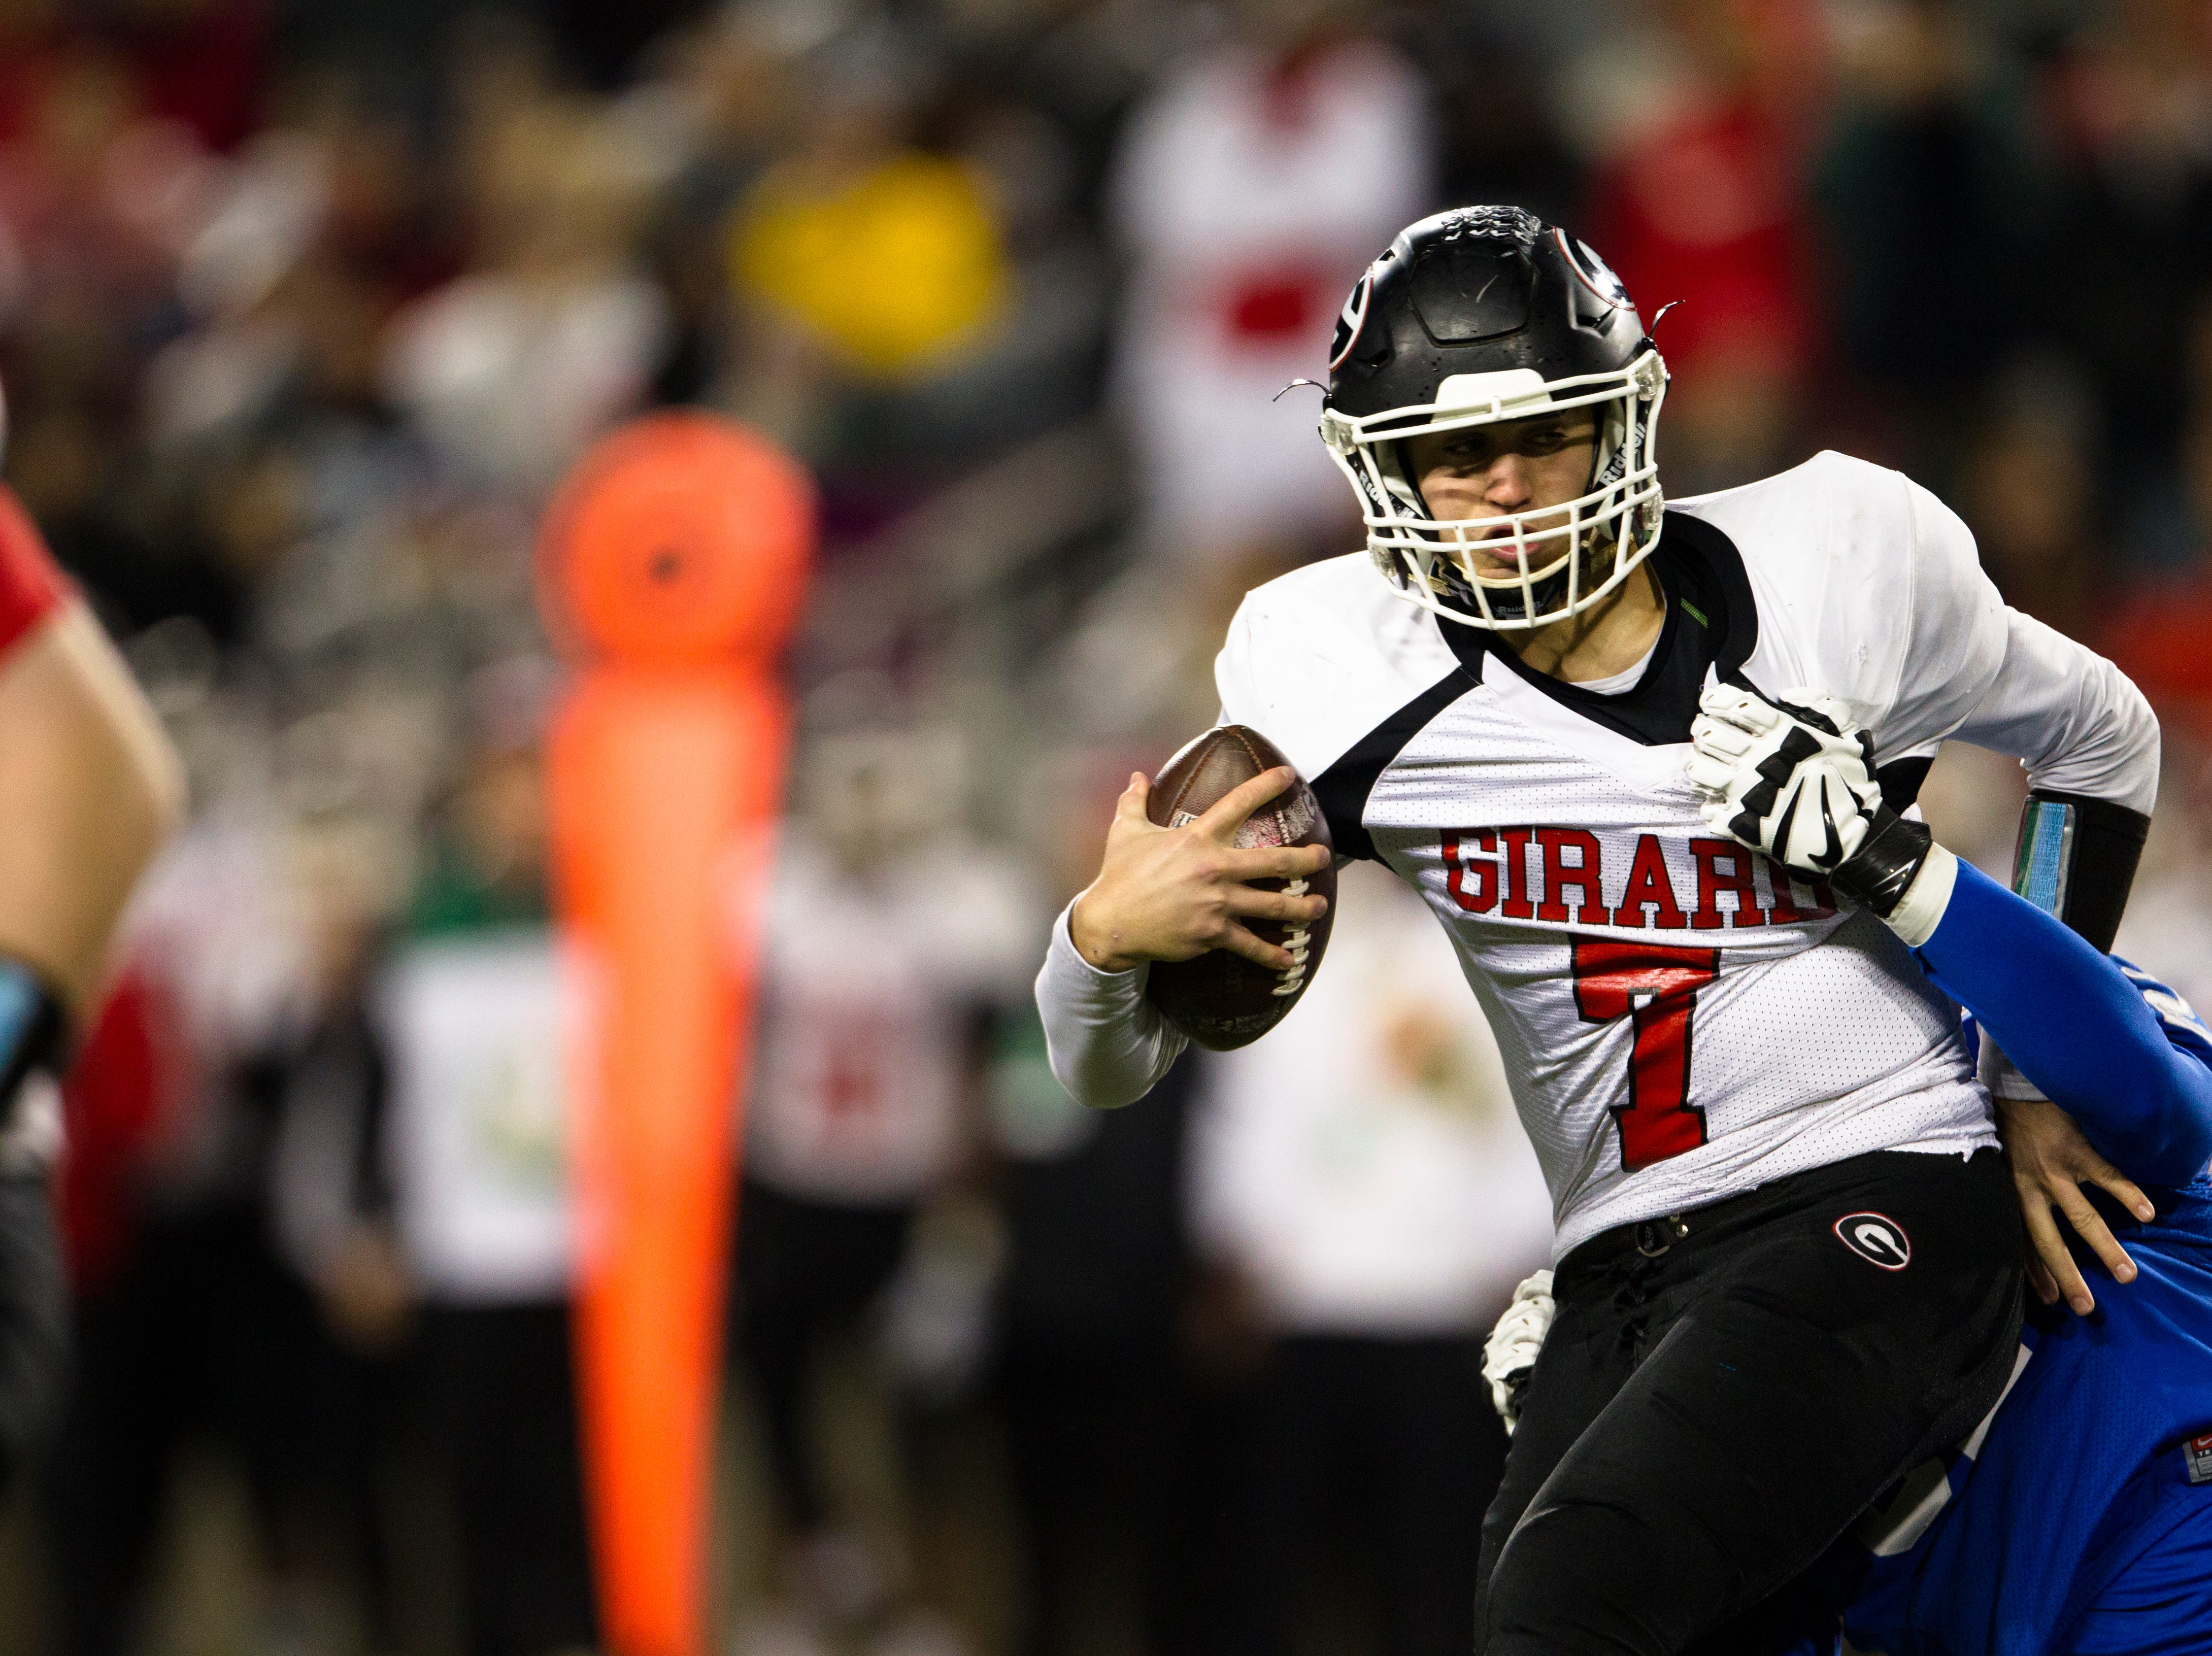 Wyoming's James Smith (52) sacks Girard's Mark Waid (7) during the first half of the OHSAA Division IV State Championship football game between Wyoming and Girard on Saturday, Dec. 1, 2018, at Tom Benson Stadium in Canton.